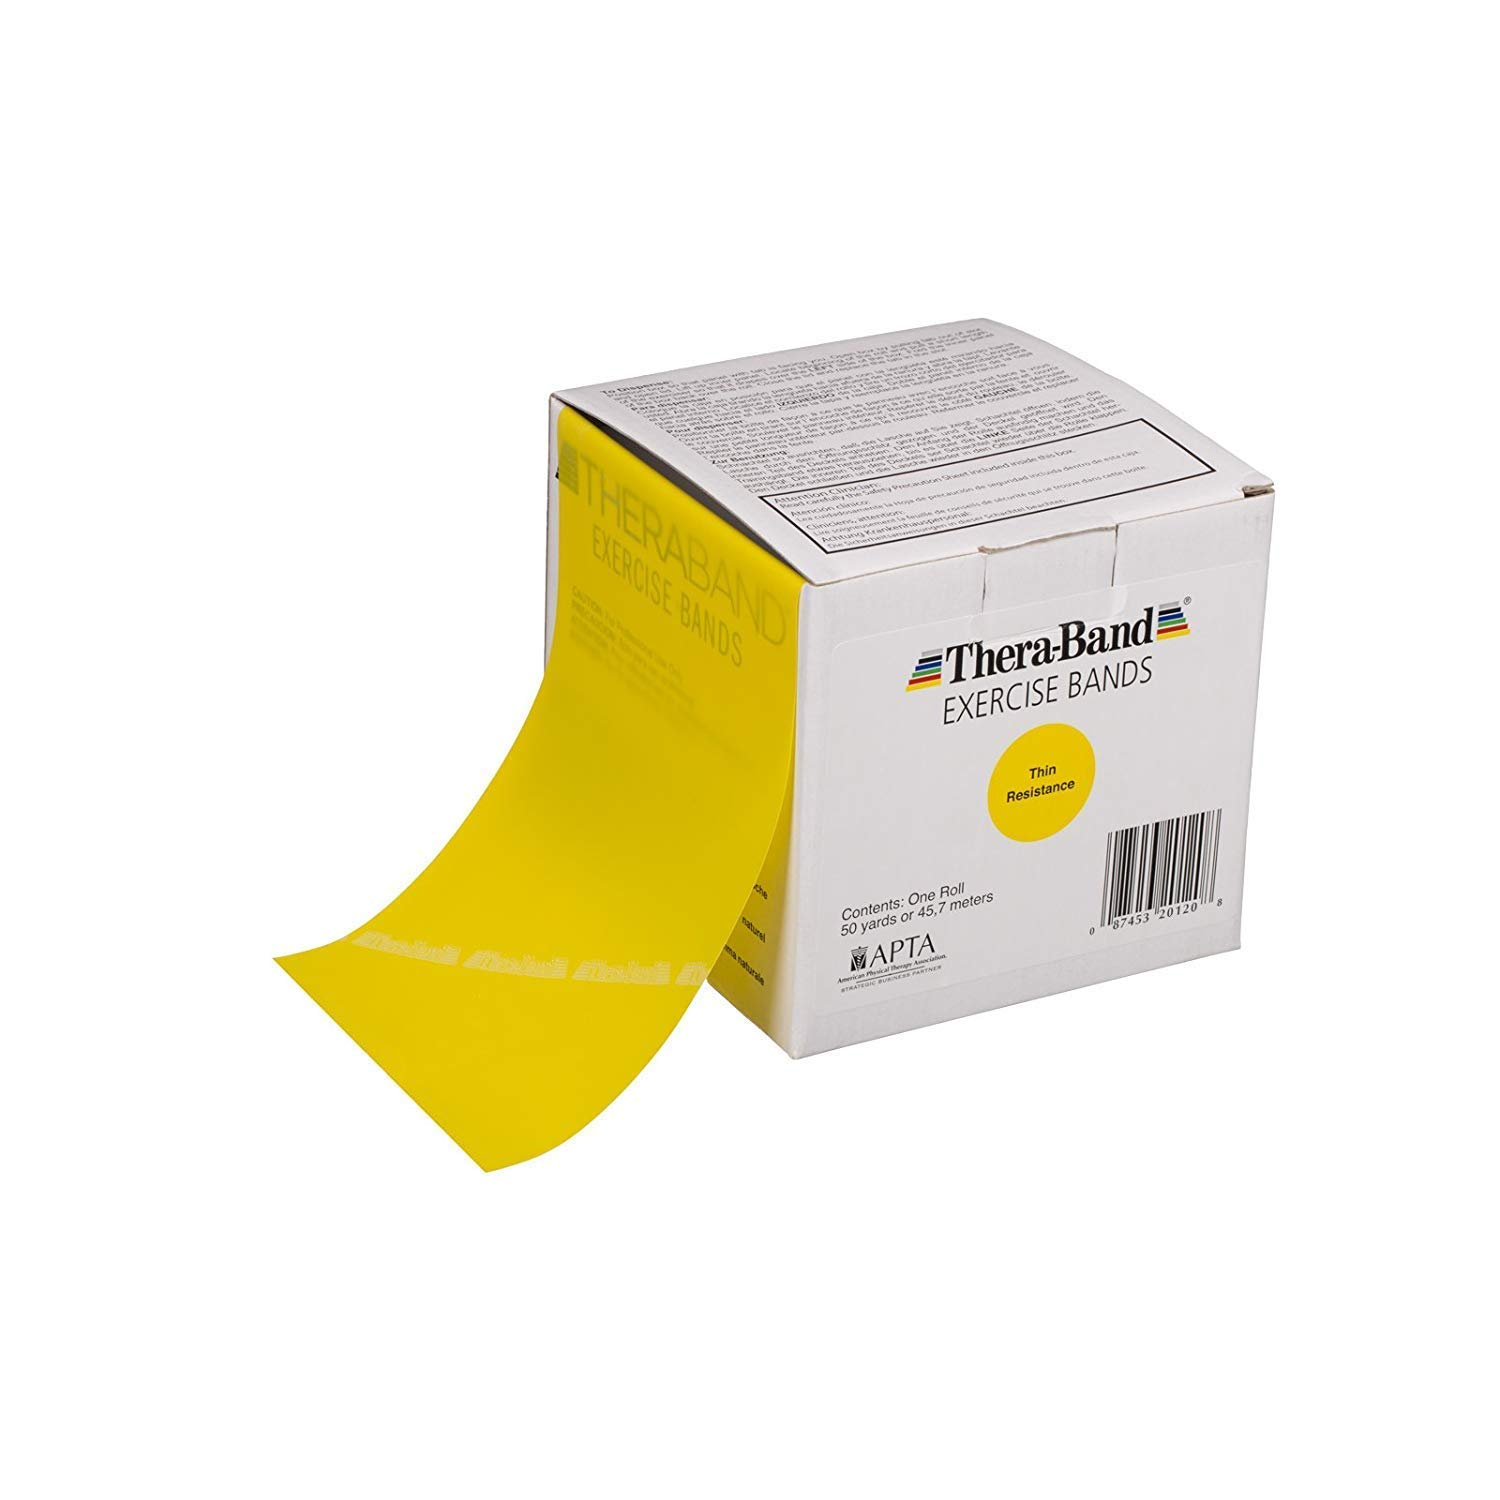 TheraBand Resistance Bands, 50 Yard Roll Professional Latex Elastic Band For Upper & Lower Body & Core Exercise, Physical Therapy, Pilates, At-Home Workouts, Rehab, Yellow, Thin, Beginner Level 2